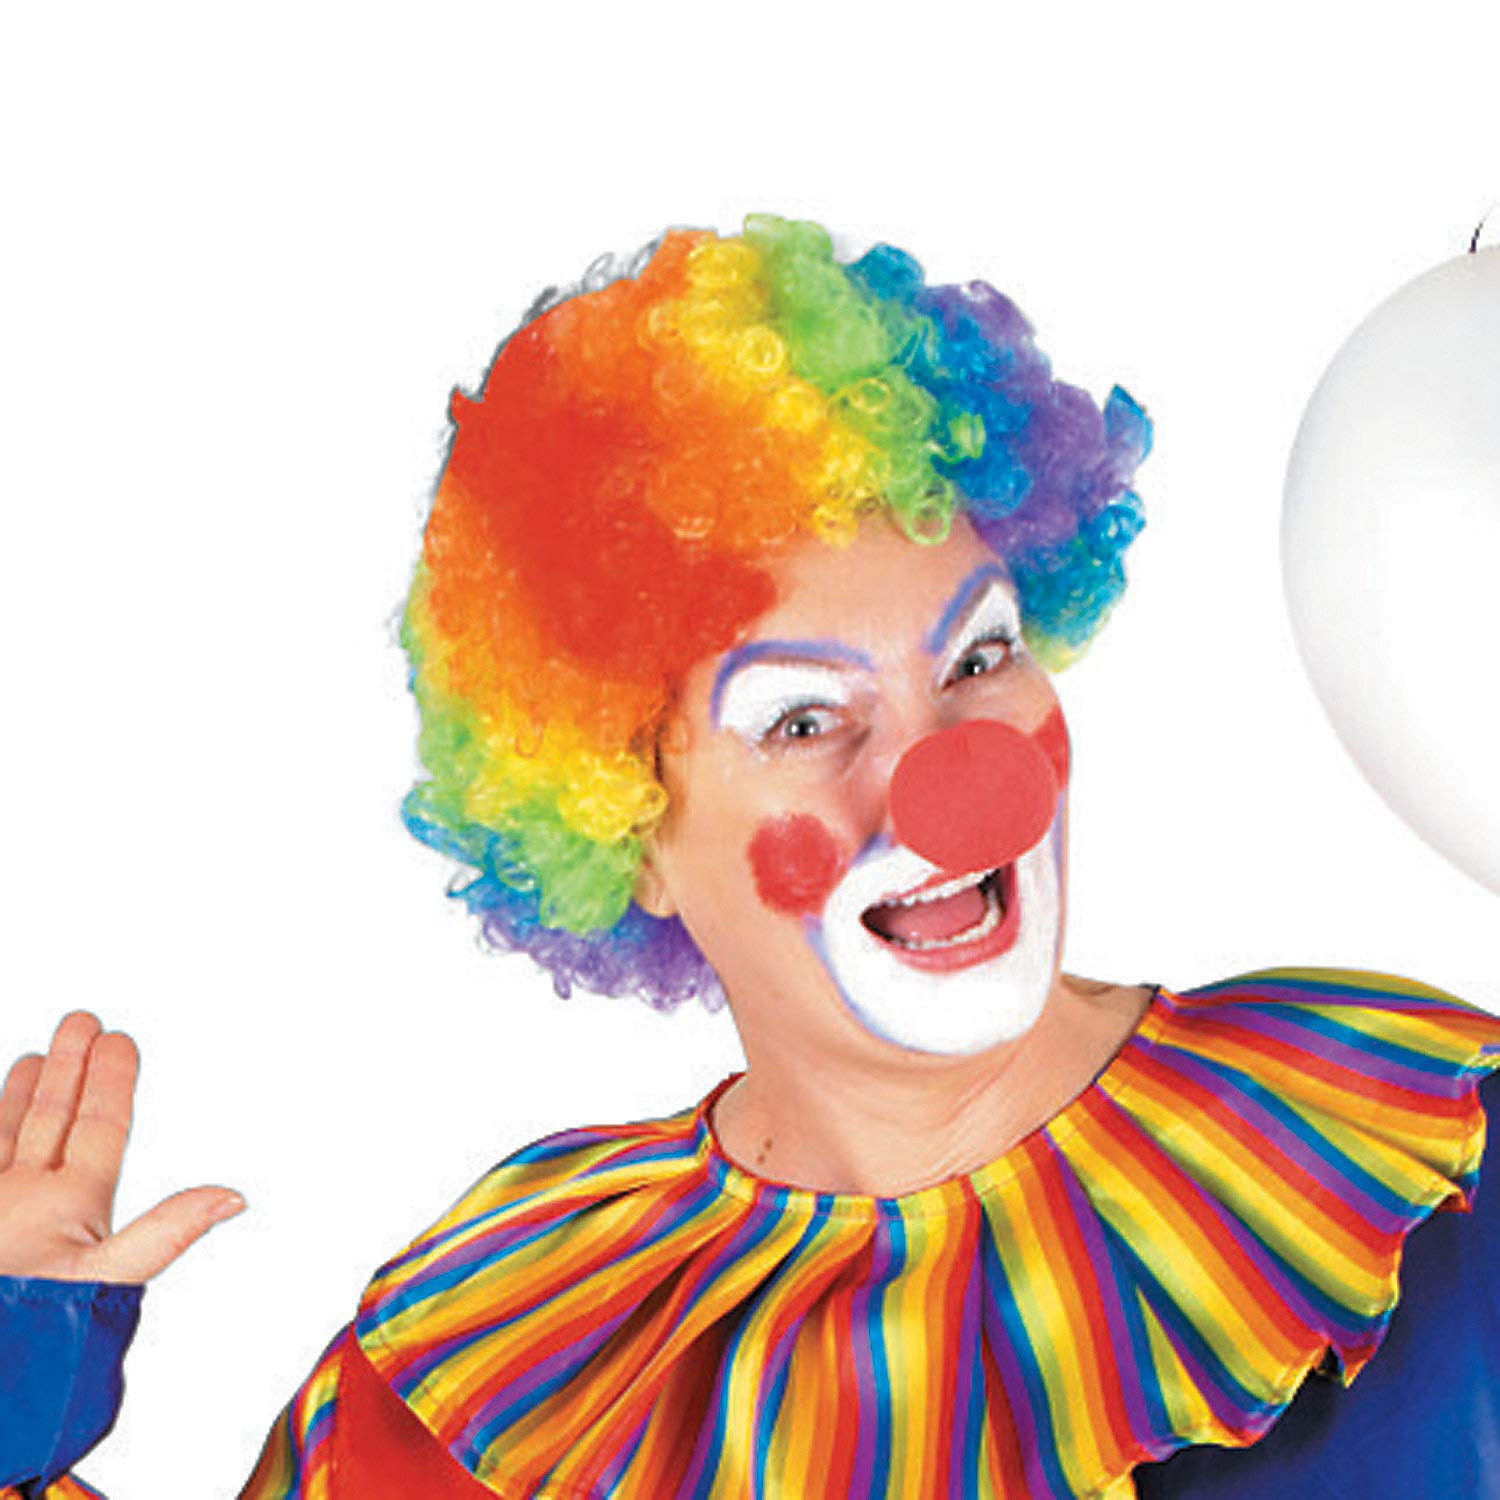 Amazon.com  Fun Express - Rainbow Clown Wig for Party - Apparel Accessories  - Costume Accessories - Wigs   Beards - Party - 1 Piece  Toys   Games 4e869c3d4